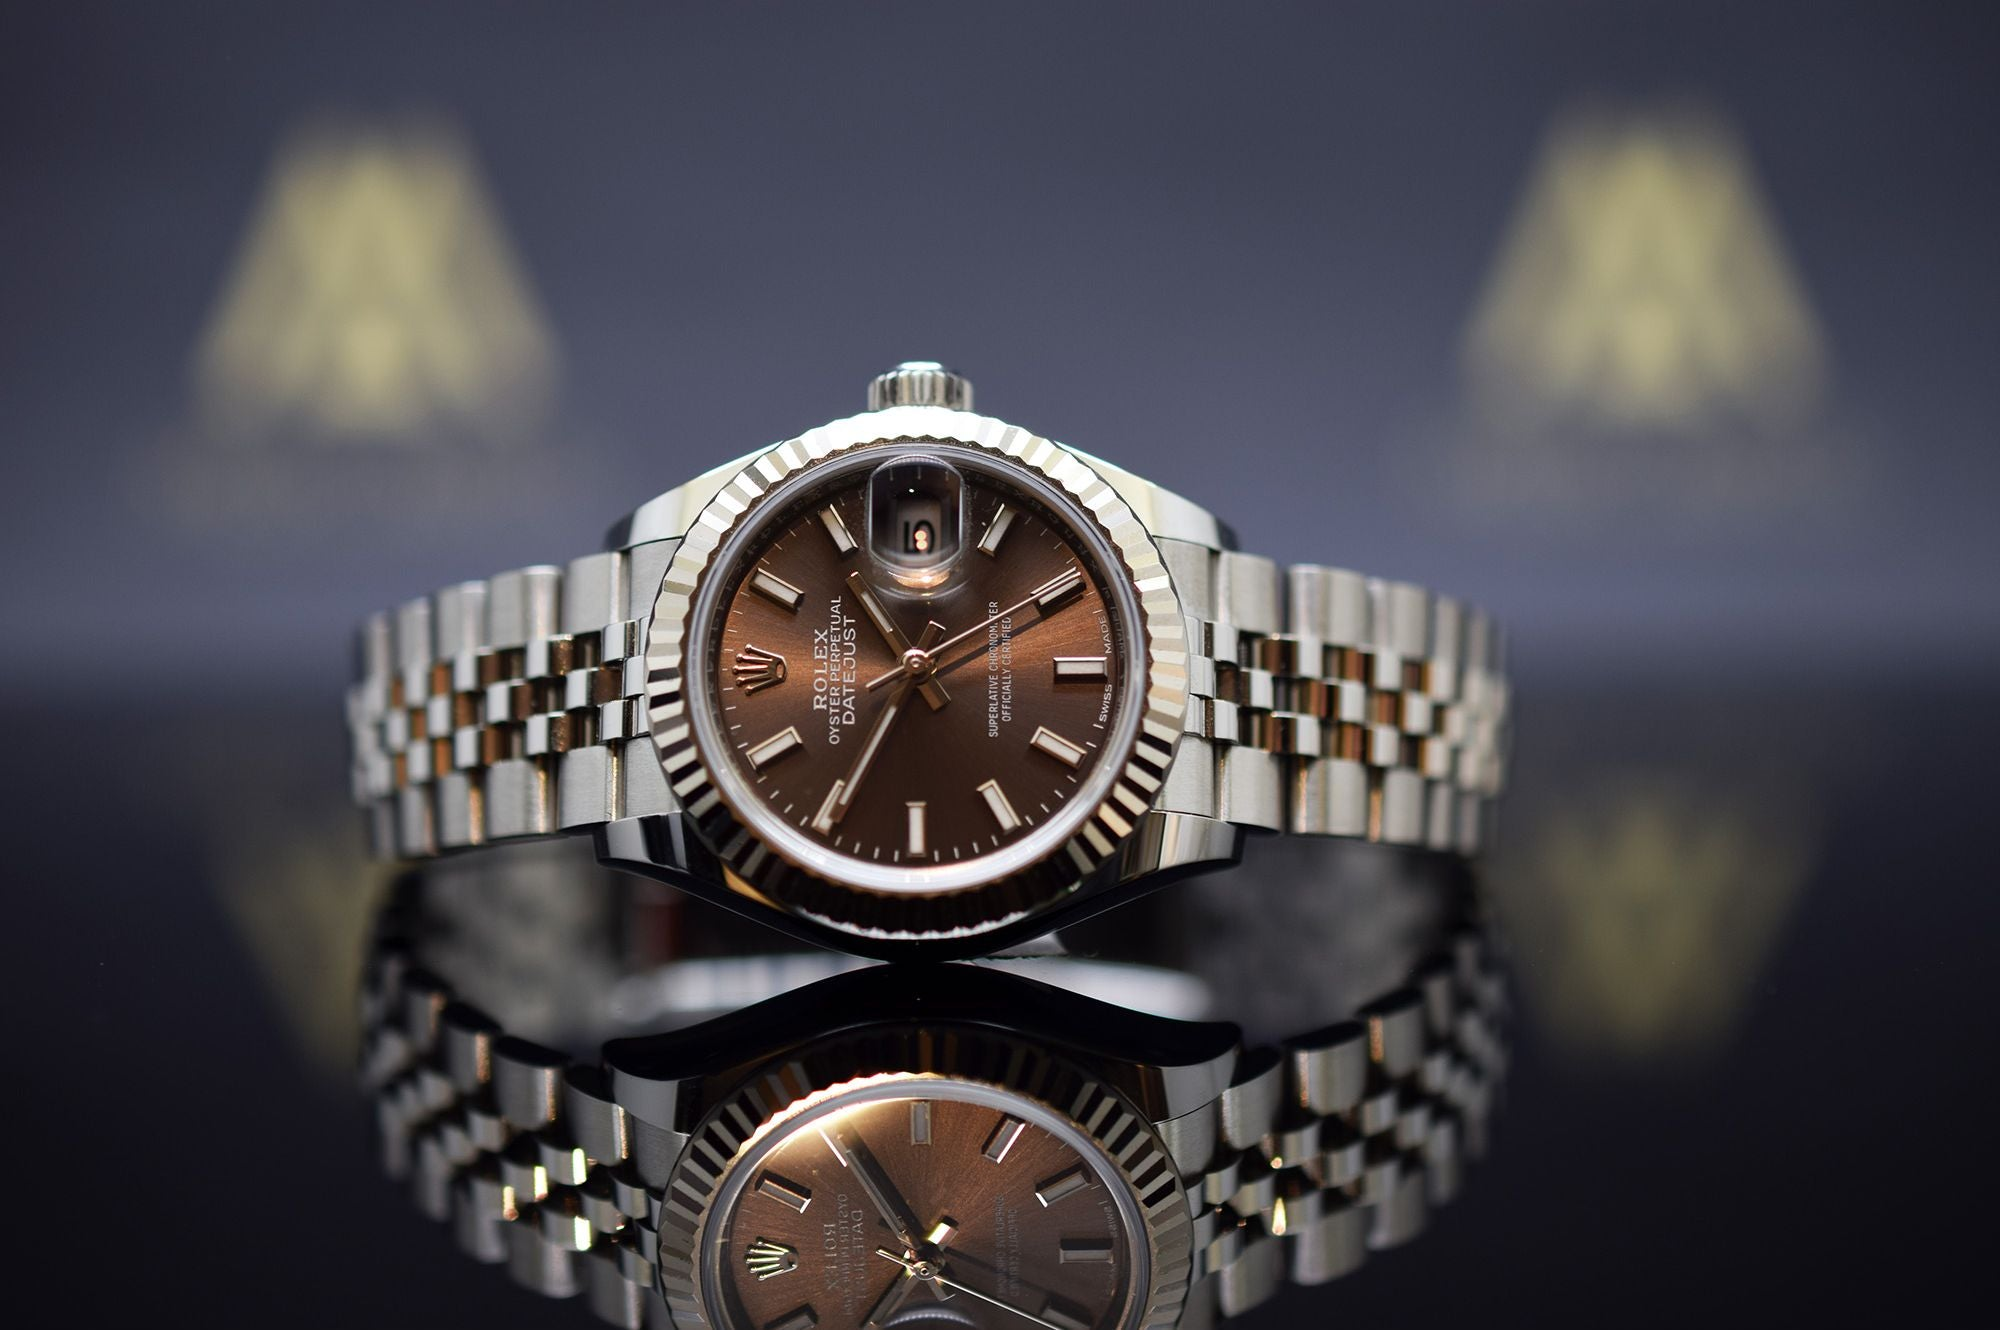 Rolex Oyster Perpetual Datejust - Aus 2018